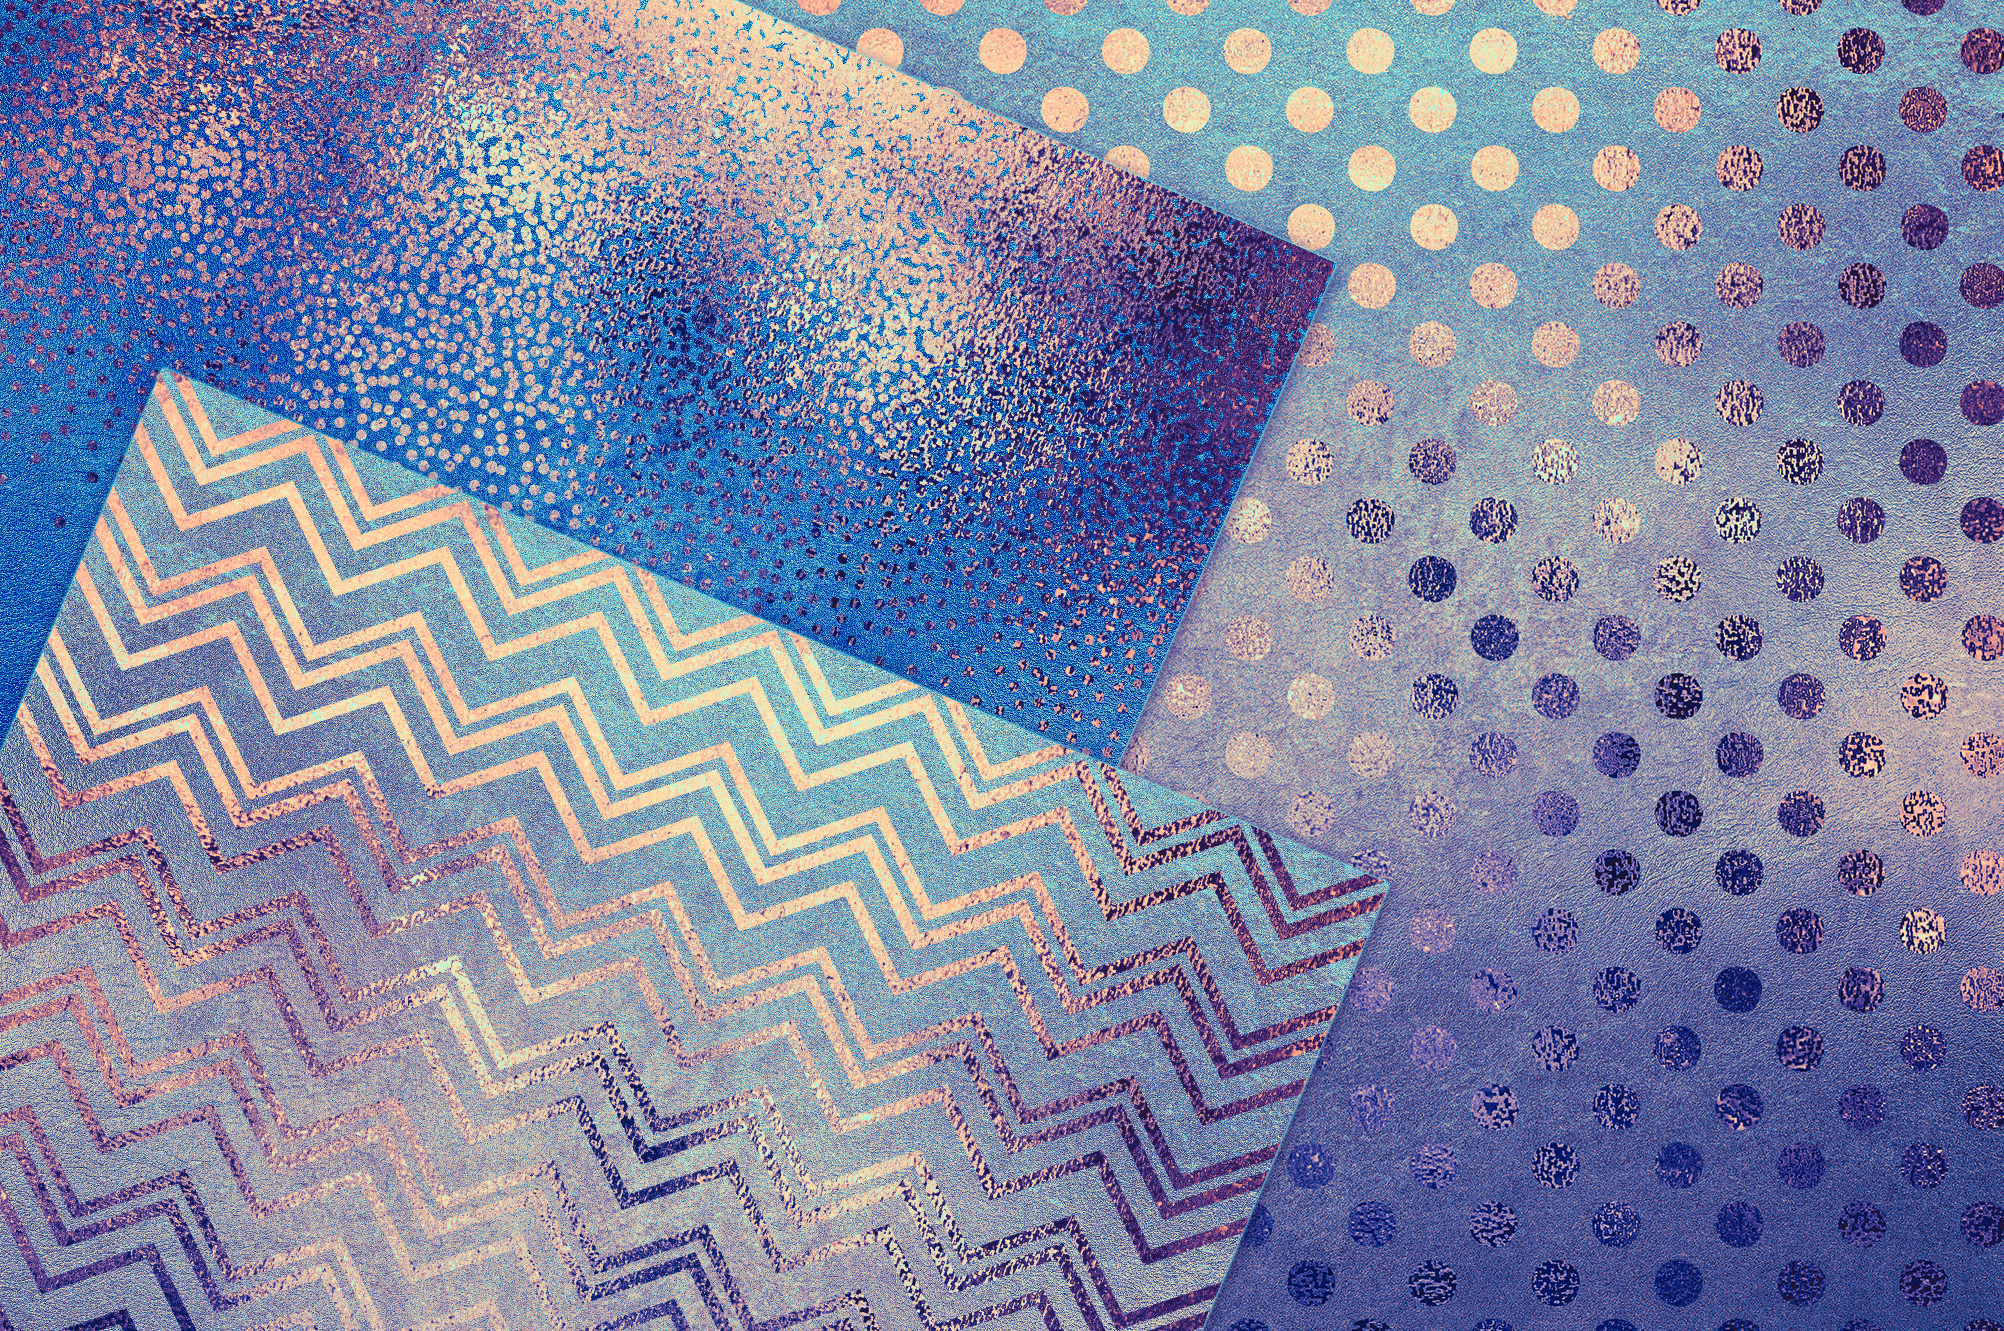 Blue Gold Pattern & Foil Textures example image 2